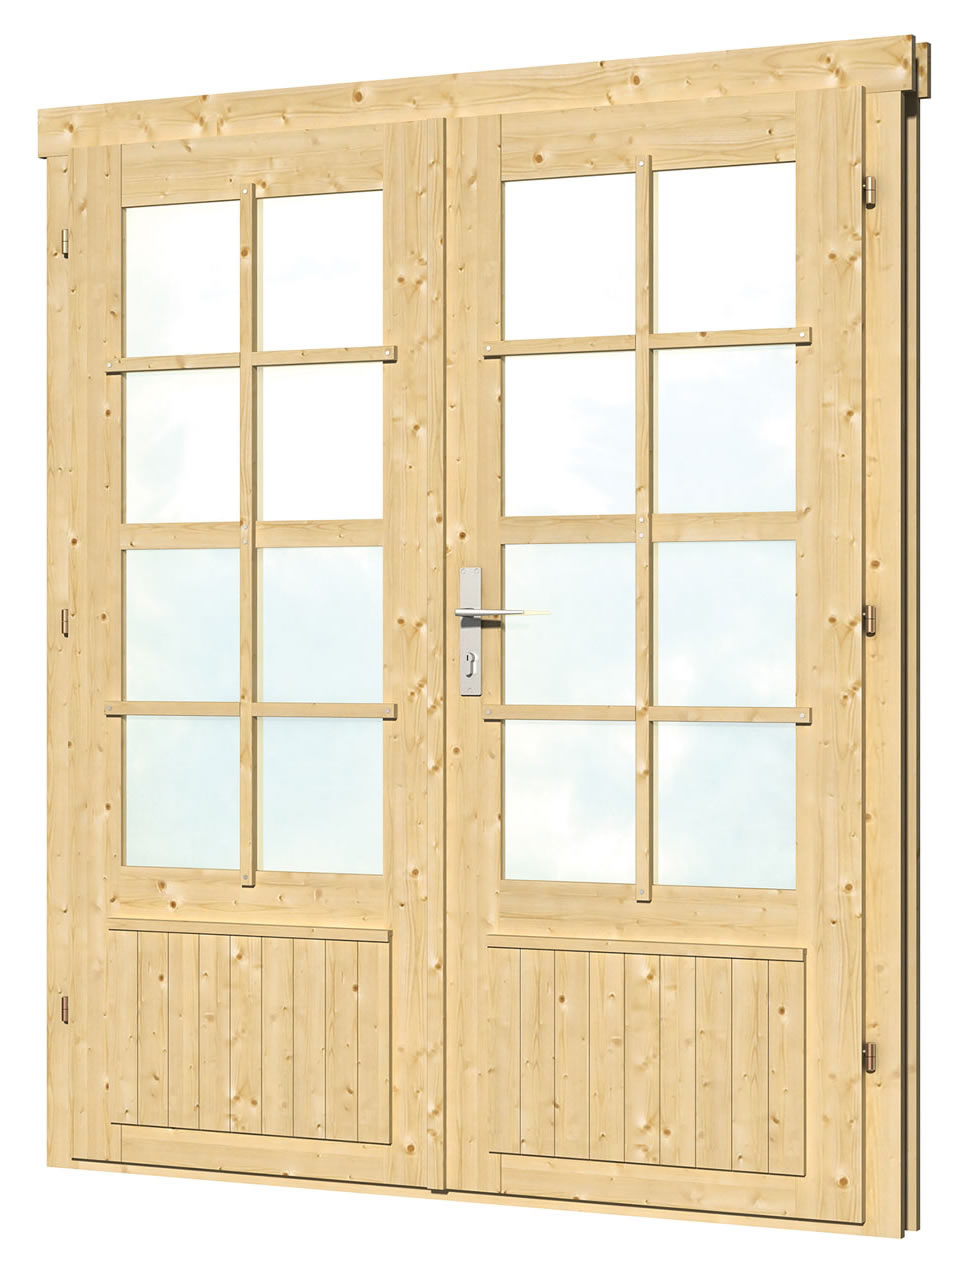 Doors for log cabin and garden buildings up to...